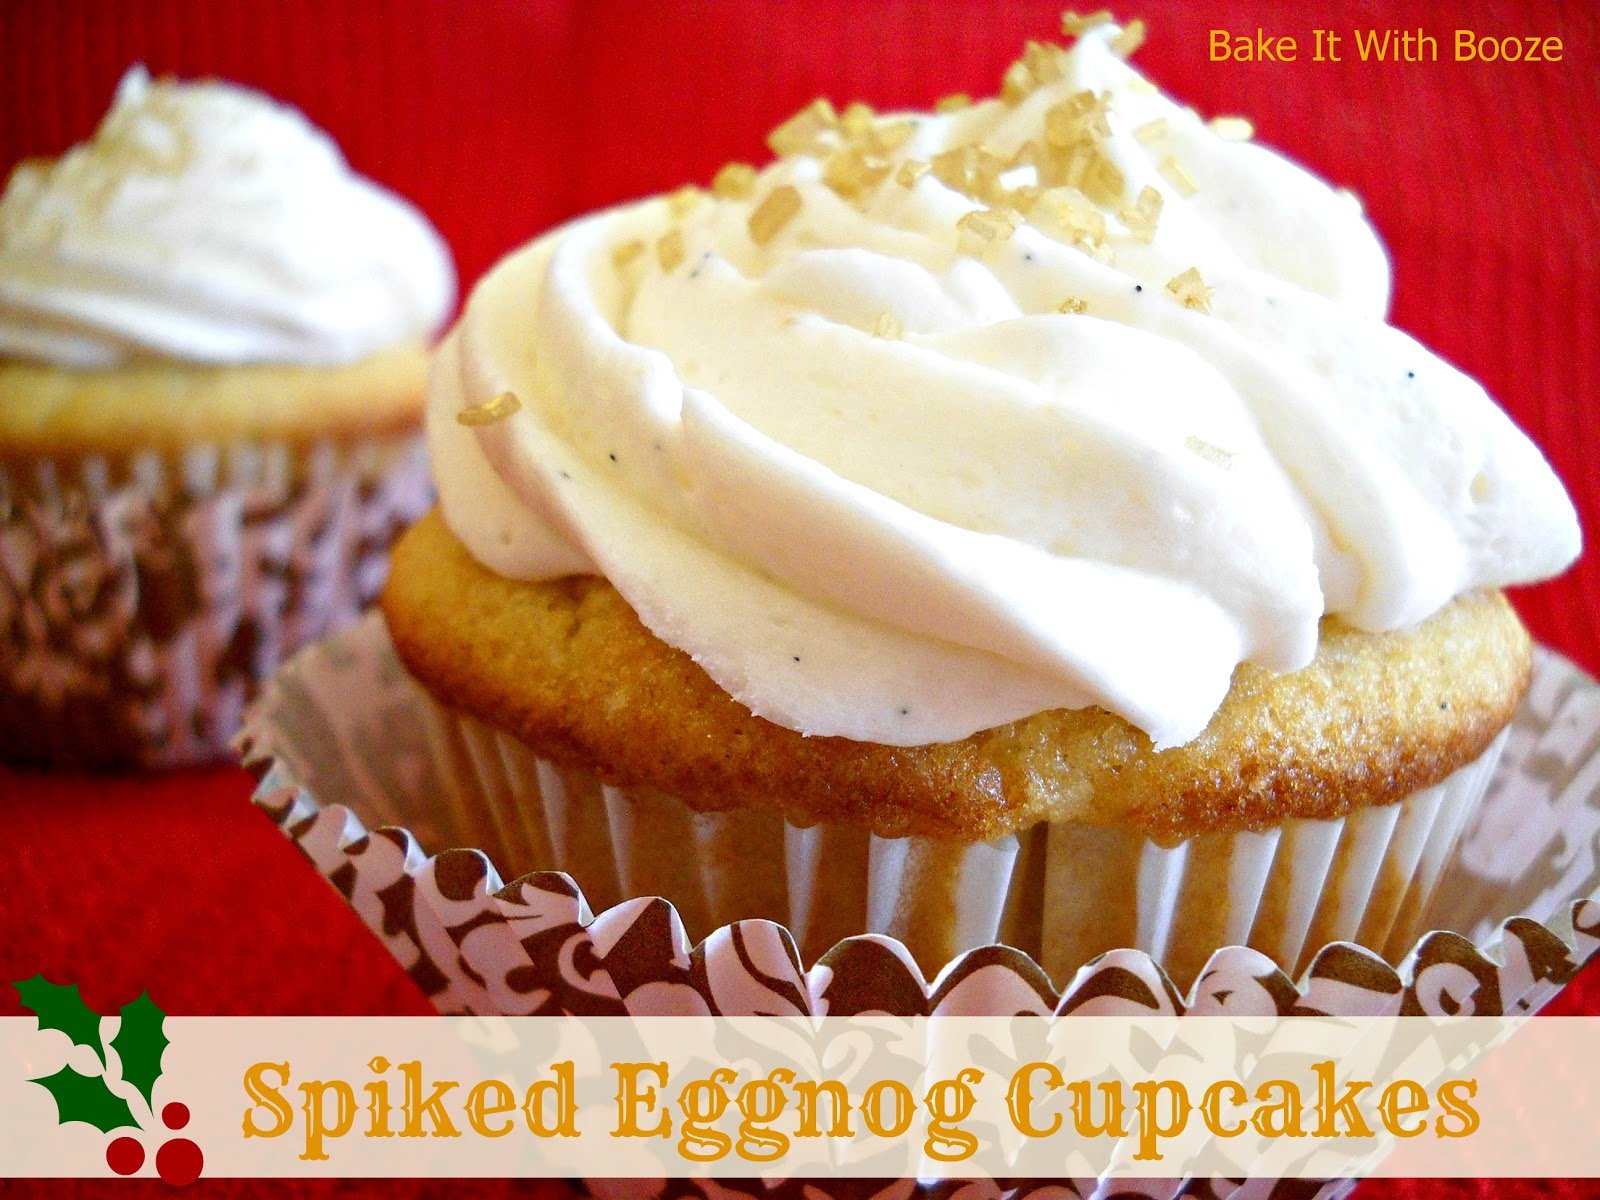 Bake It With Booze!: Spiked Eggnog Cupcakes